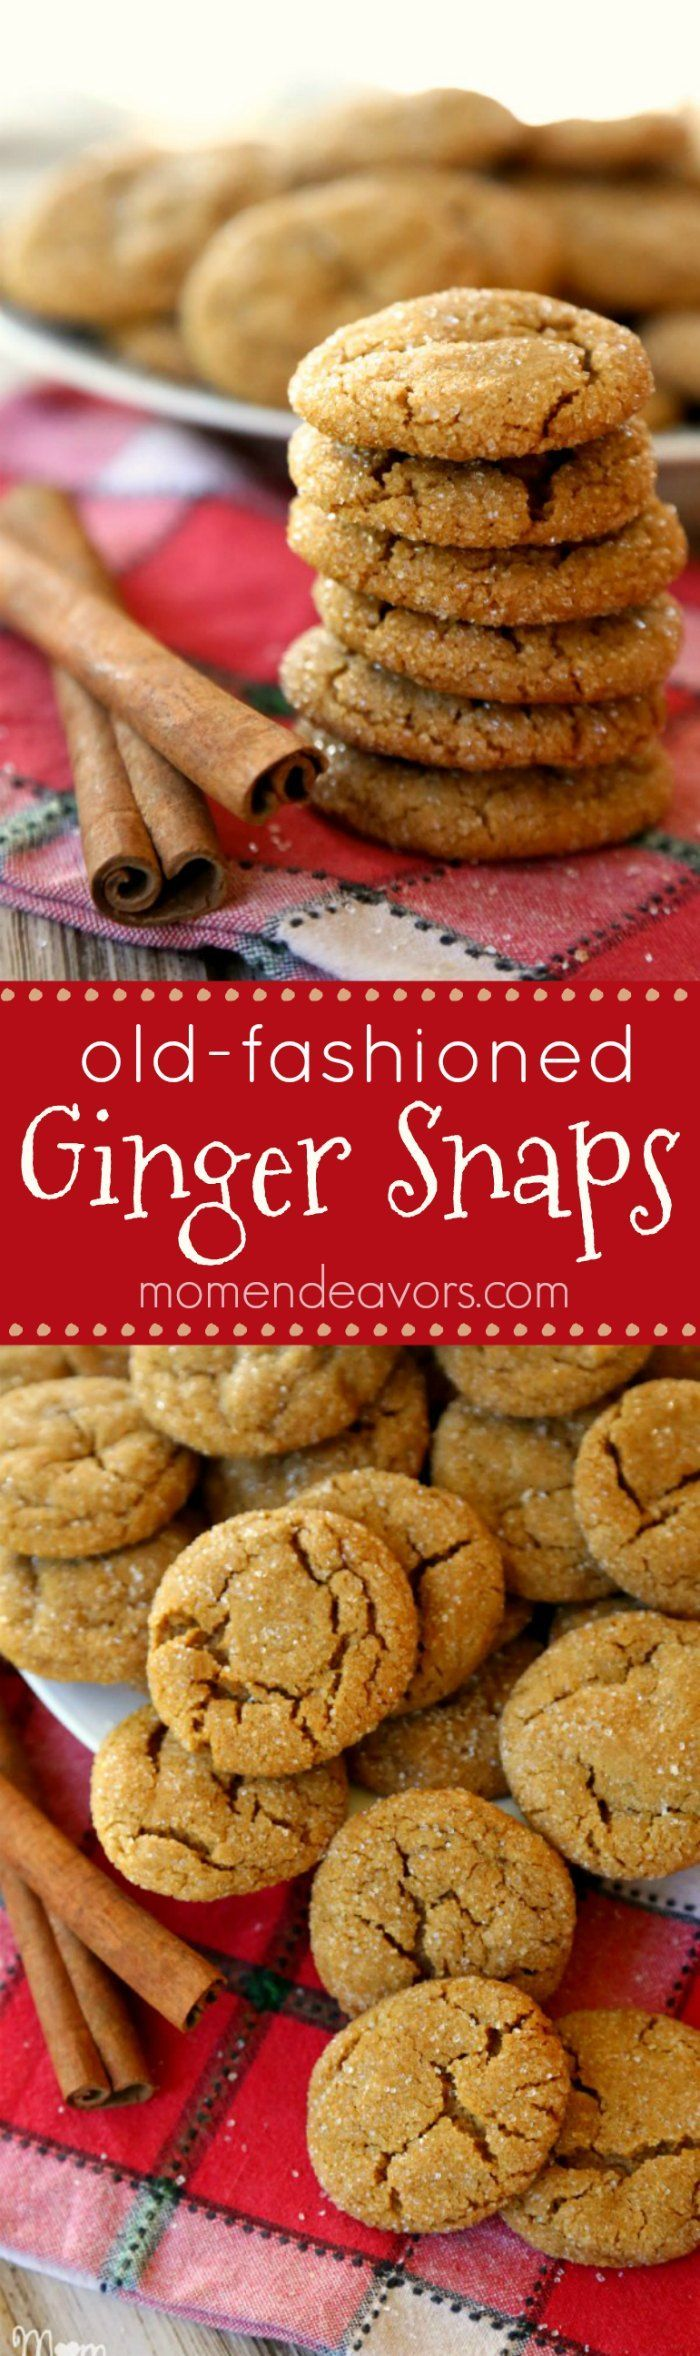 Amp occasions gt christmas alert occasions gt christmas decorations - Old Fashioned Ginger Snaps Recipe These Cookies Are So Good